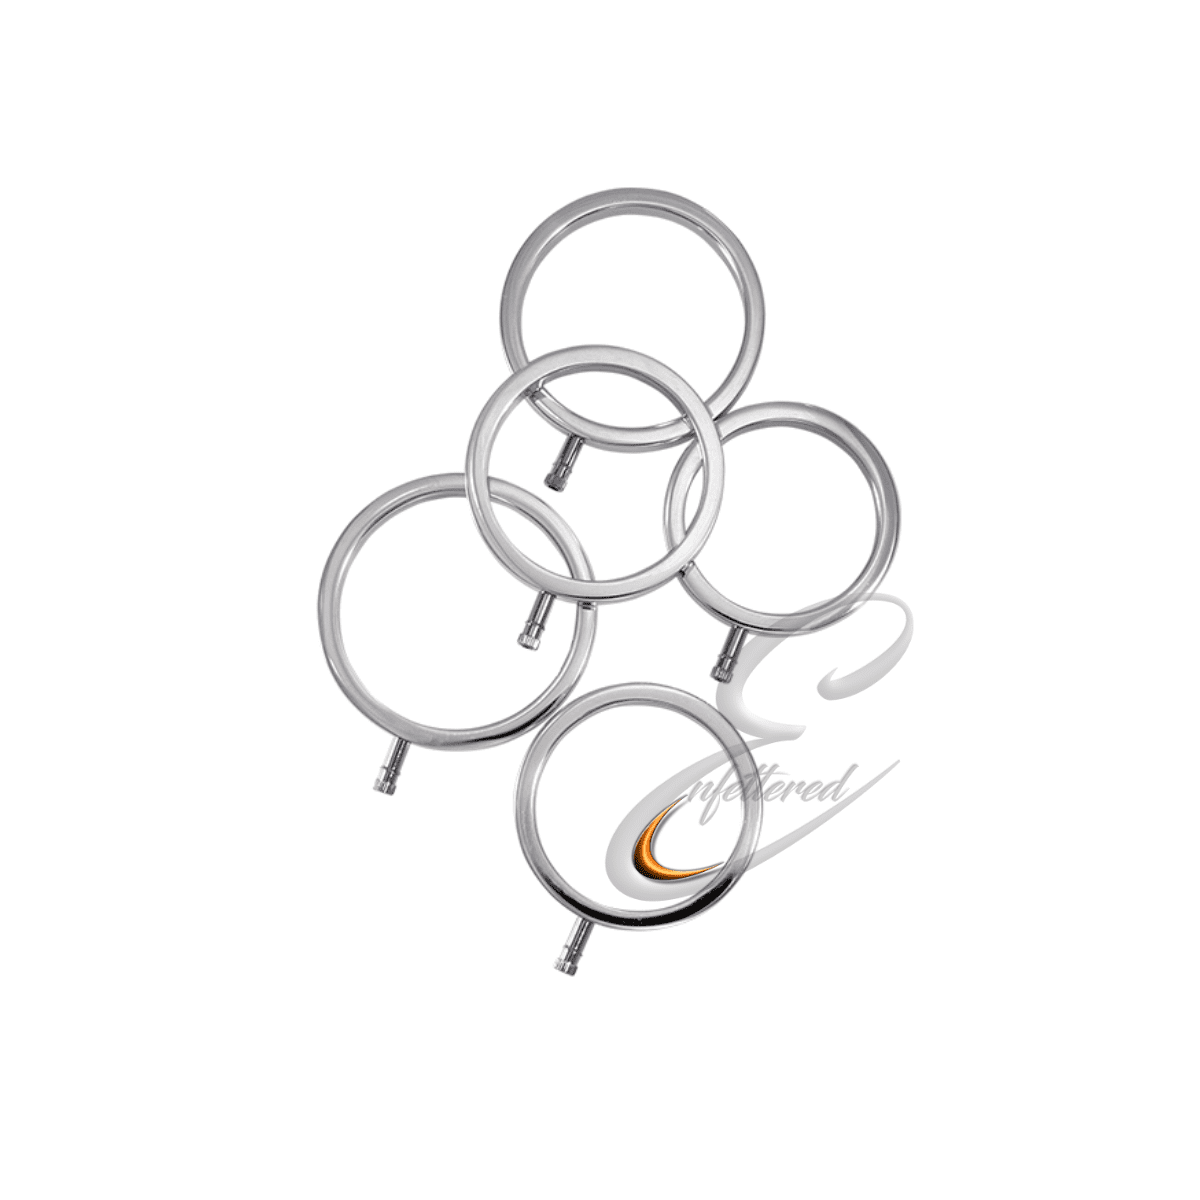 Enfettered Electra Rings Set of 5